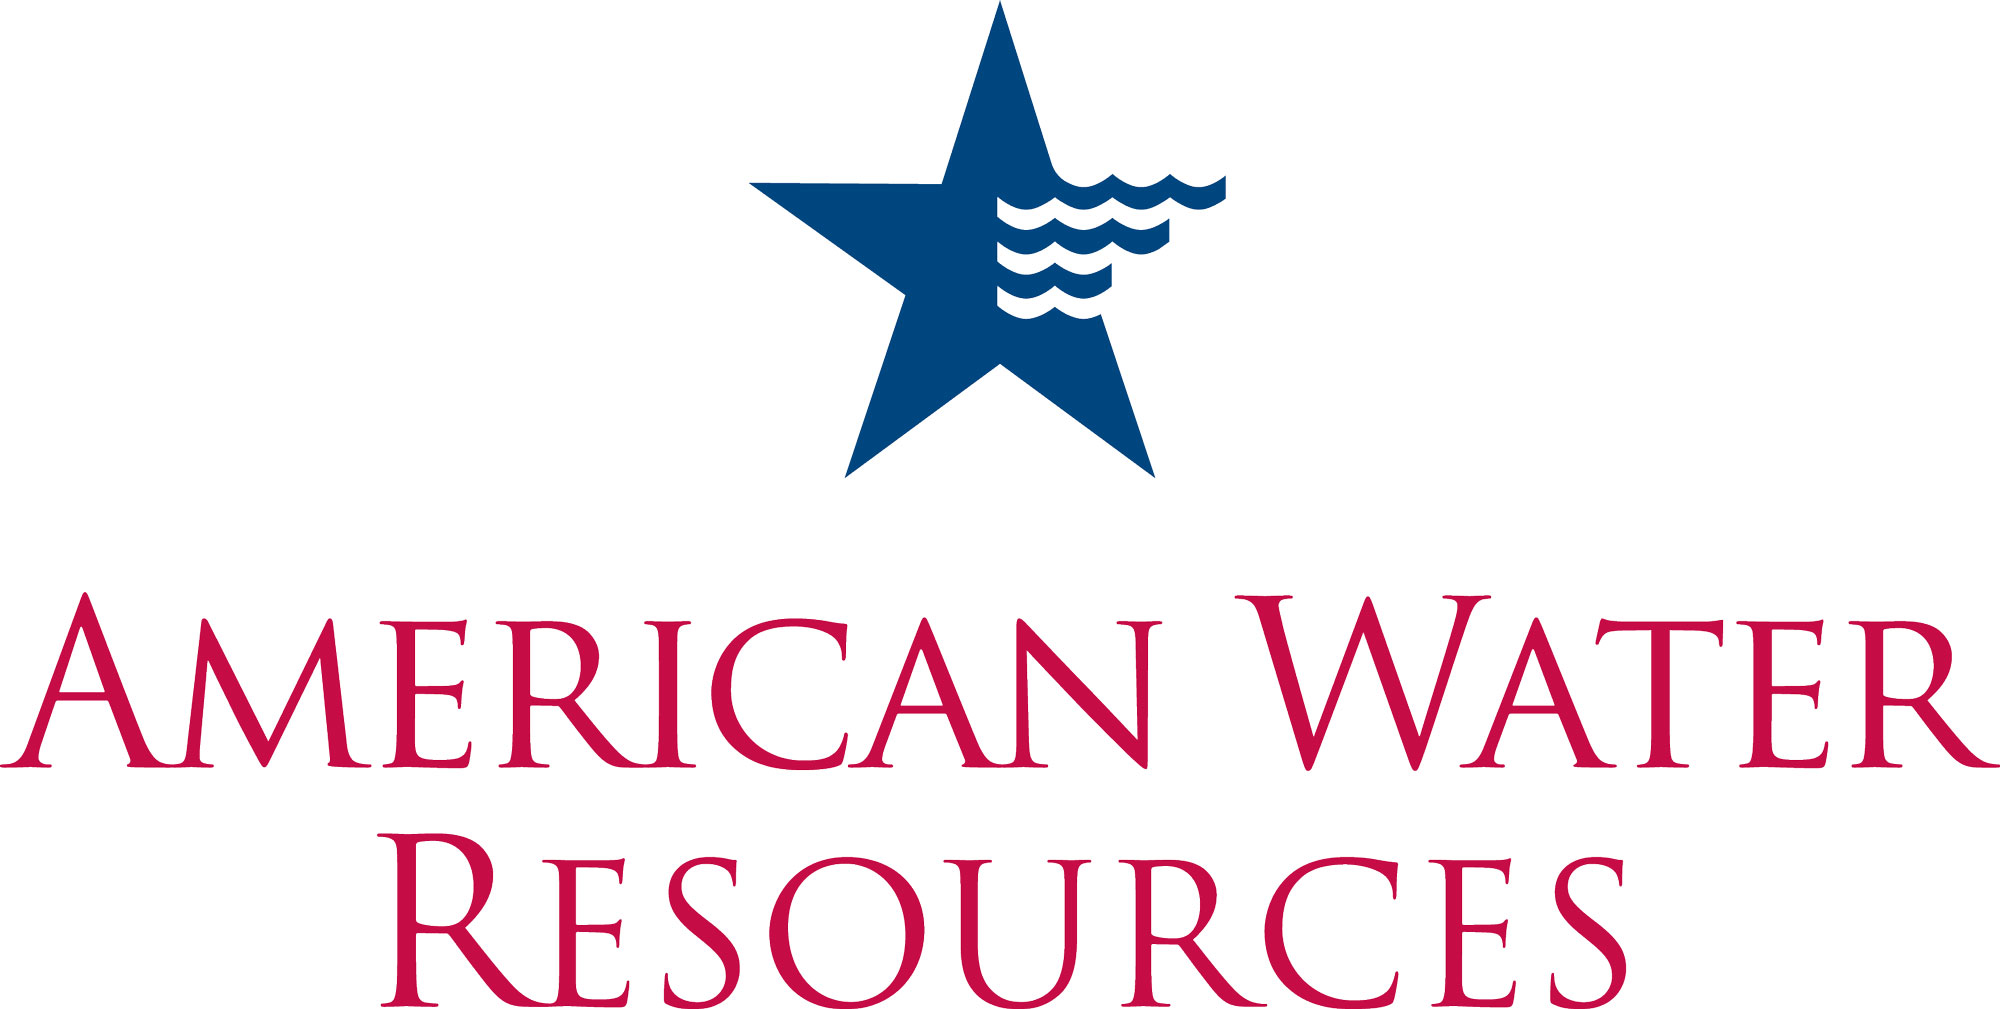 American Water Resources Launches Service Line Protection